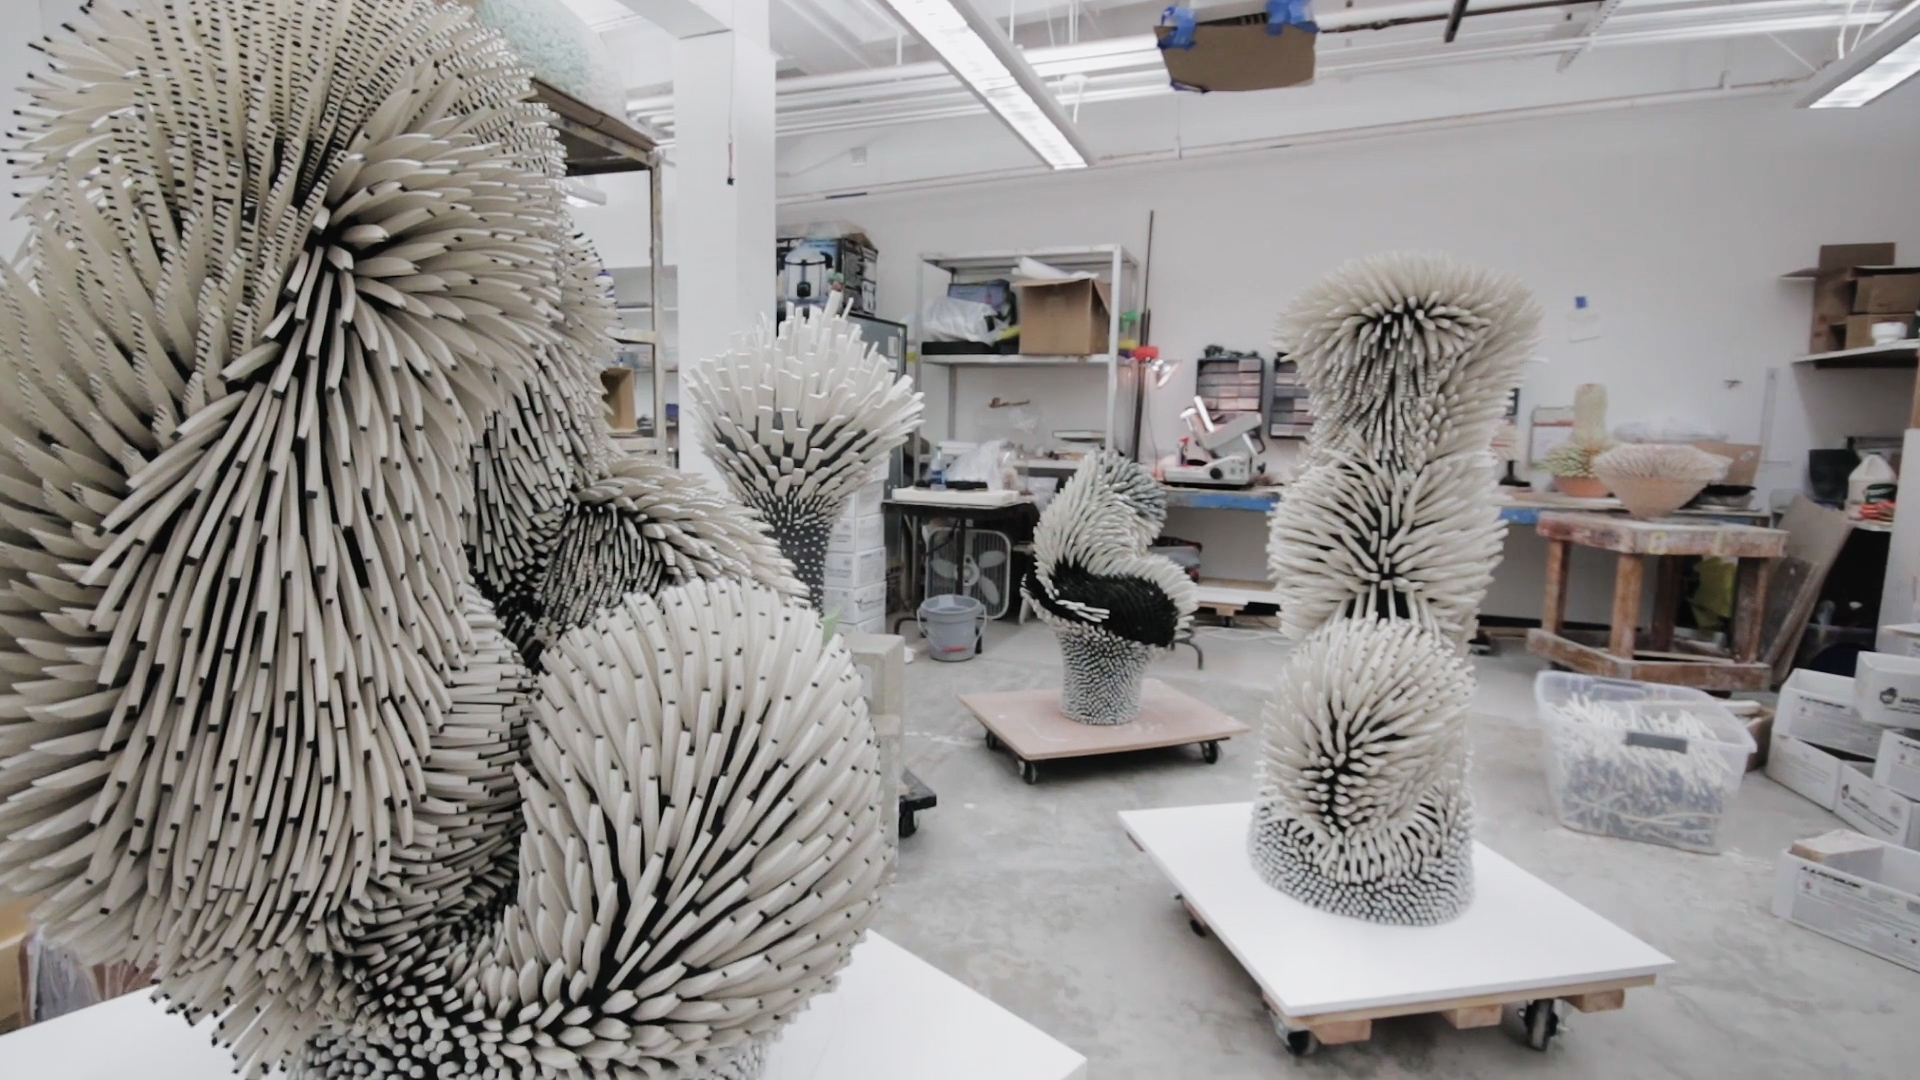 These Intricate Sculptures Are Handcrafted From Thousands of